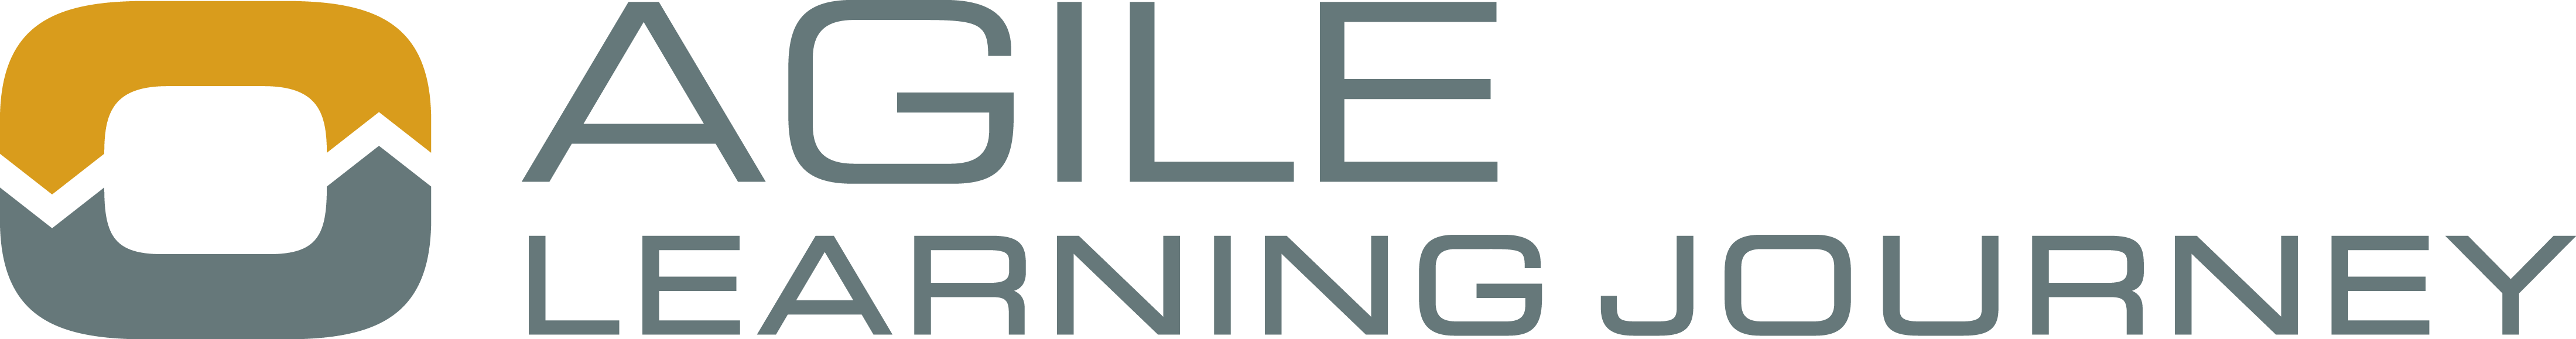 Agile Learning Journey Logo